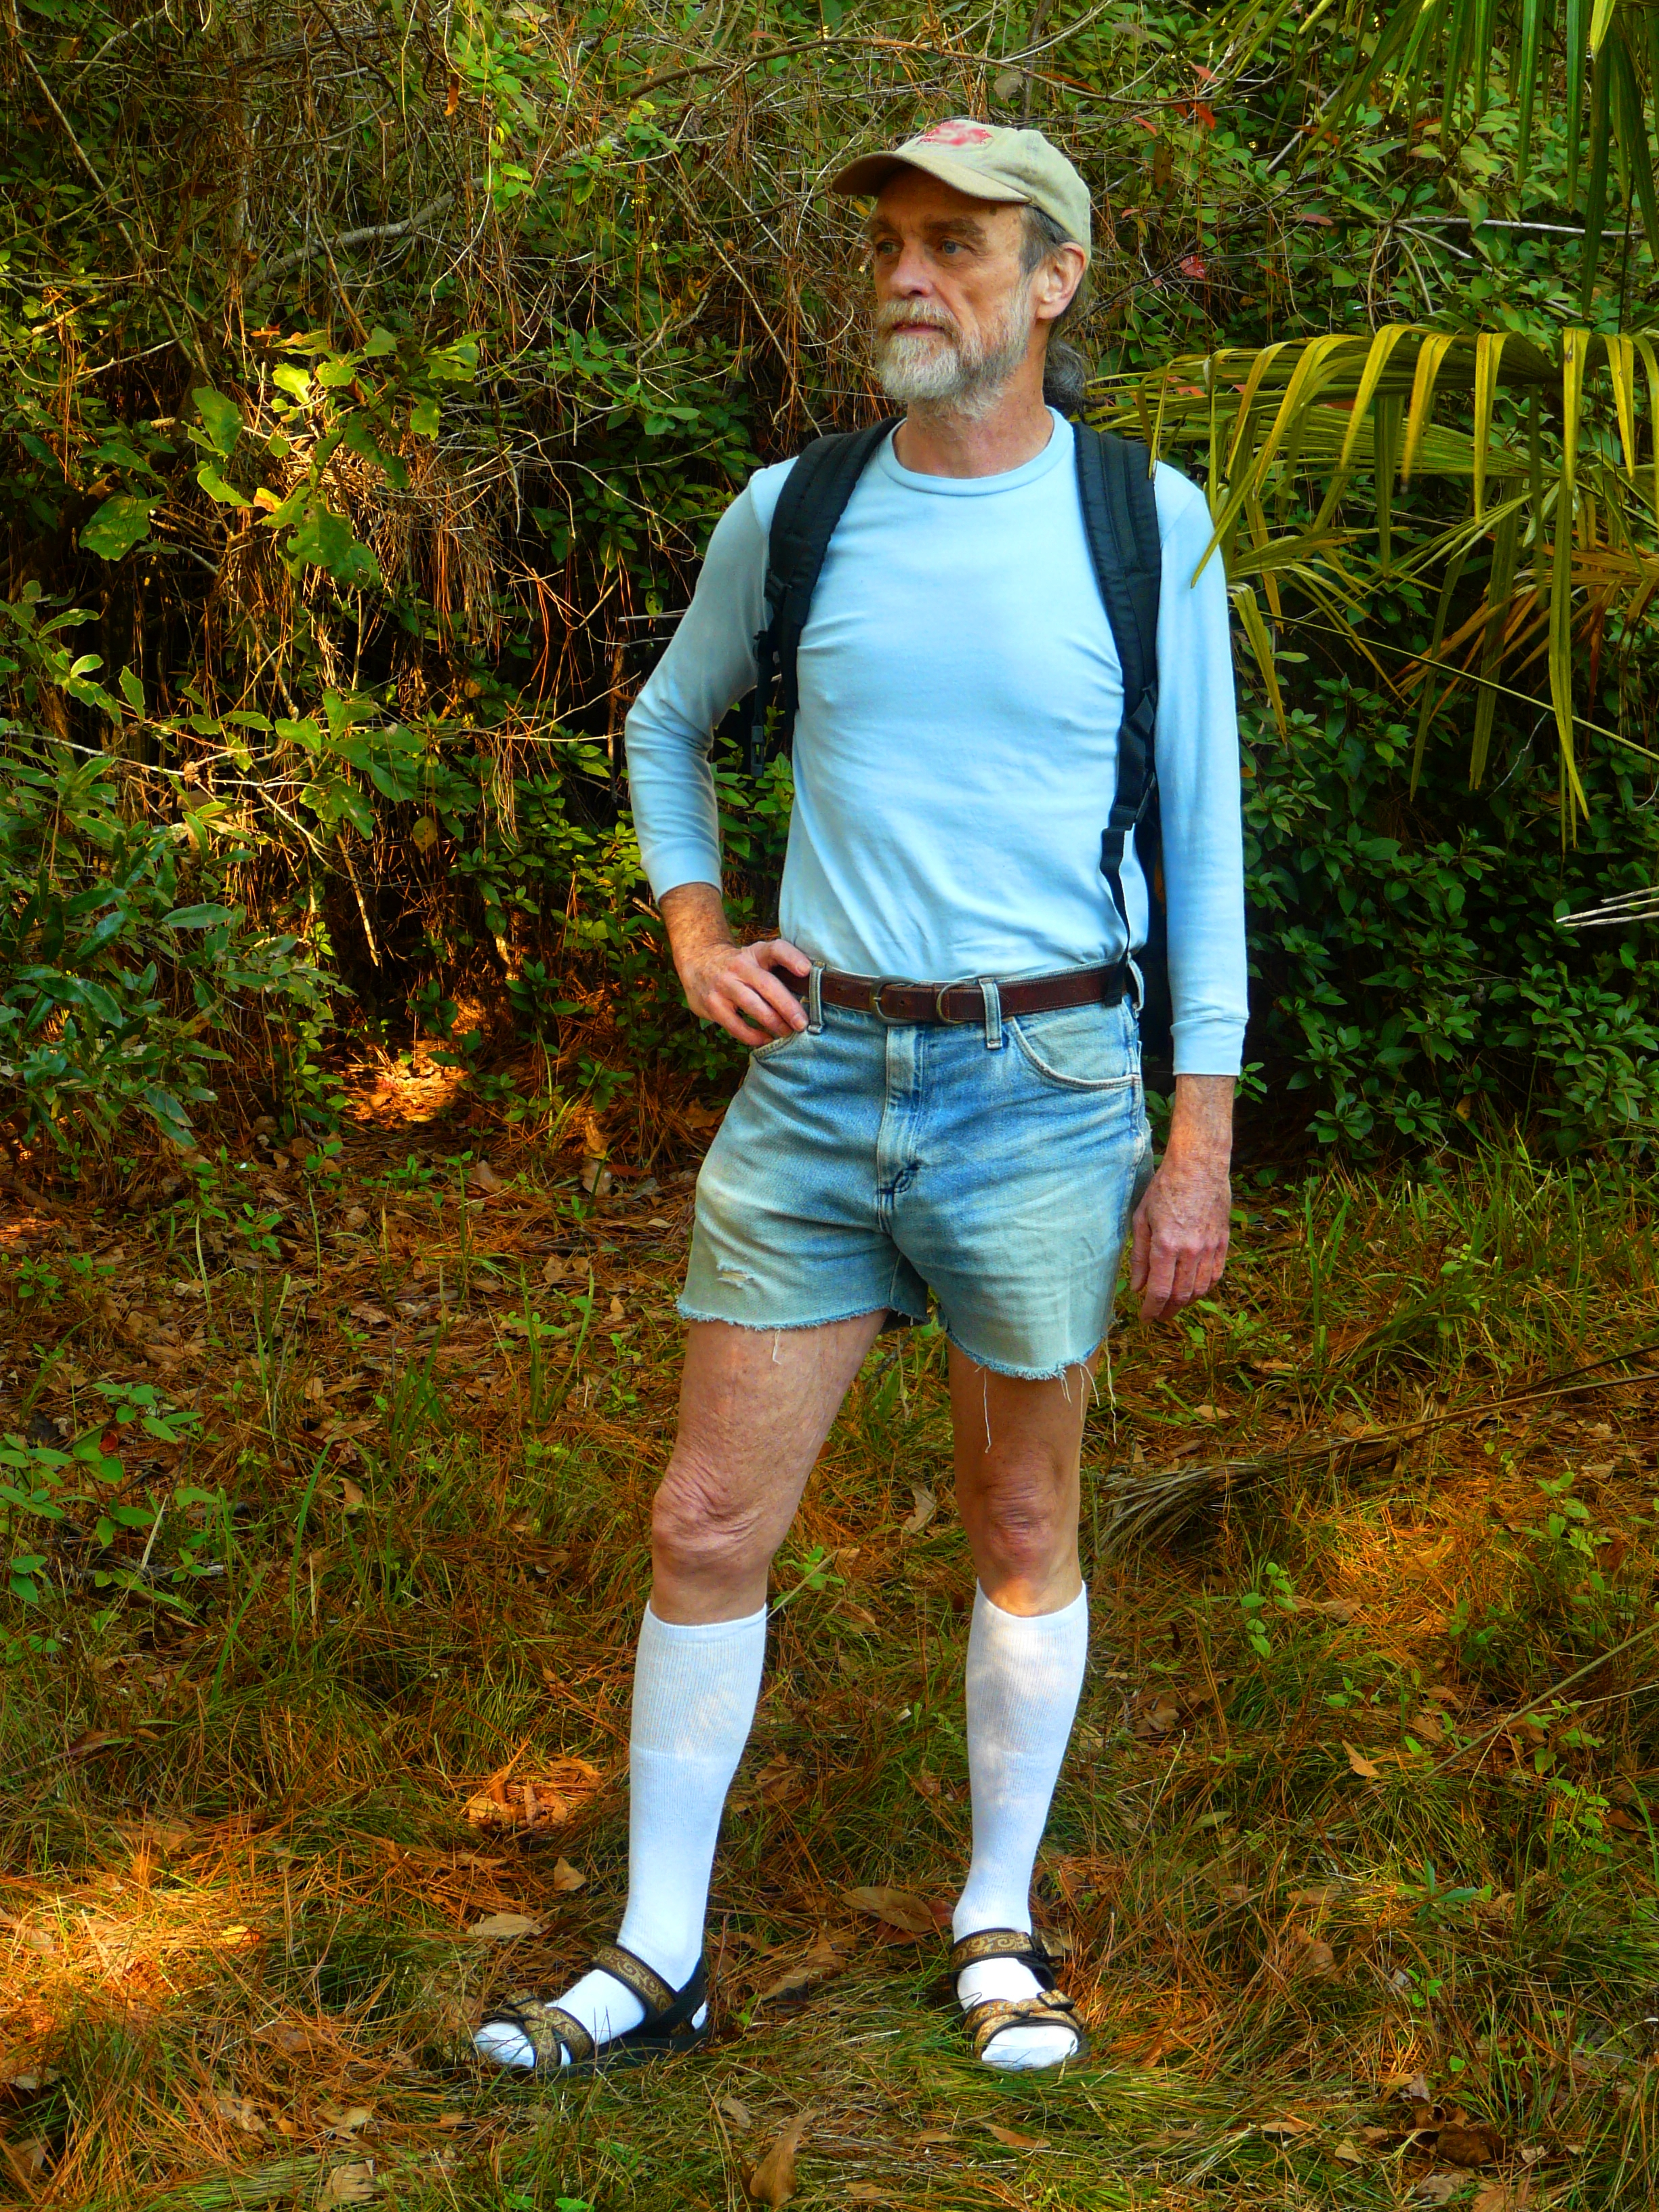 Hiking in Knee Socks Sandals and Cut offs - Thonged flip flops.